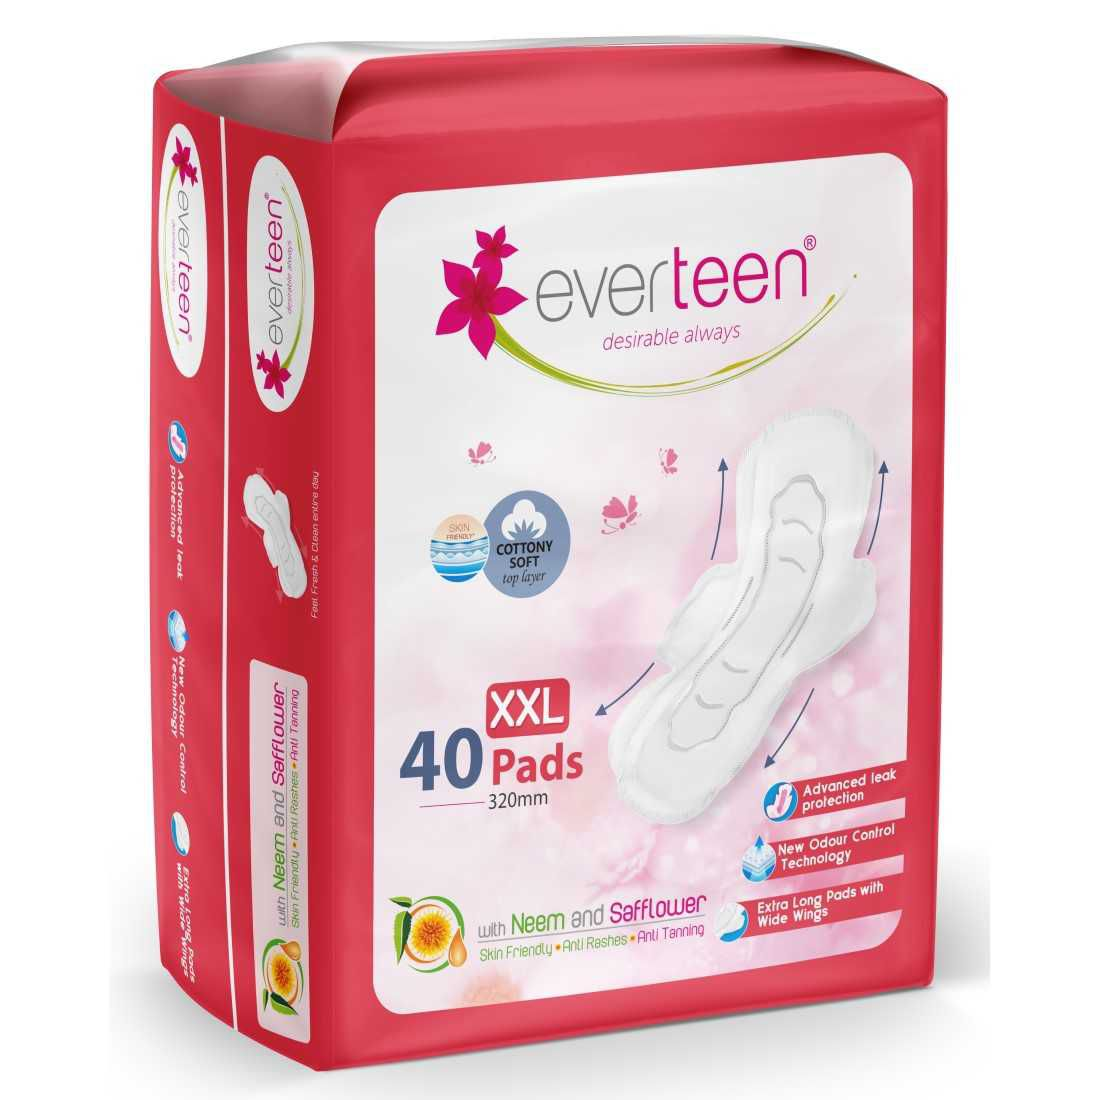 Everteen Xxl Cottony Soft Sanitary Napkin Pads Xxl 40 Sanitary Pads Buy Everteen Xxl Cottony Soft Sanitary Napkin Pads Xxl 40 Sanitary Pads At Best Prices In India Snapdeal